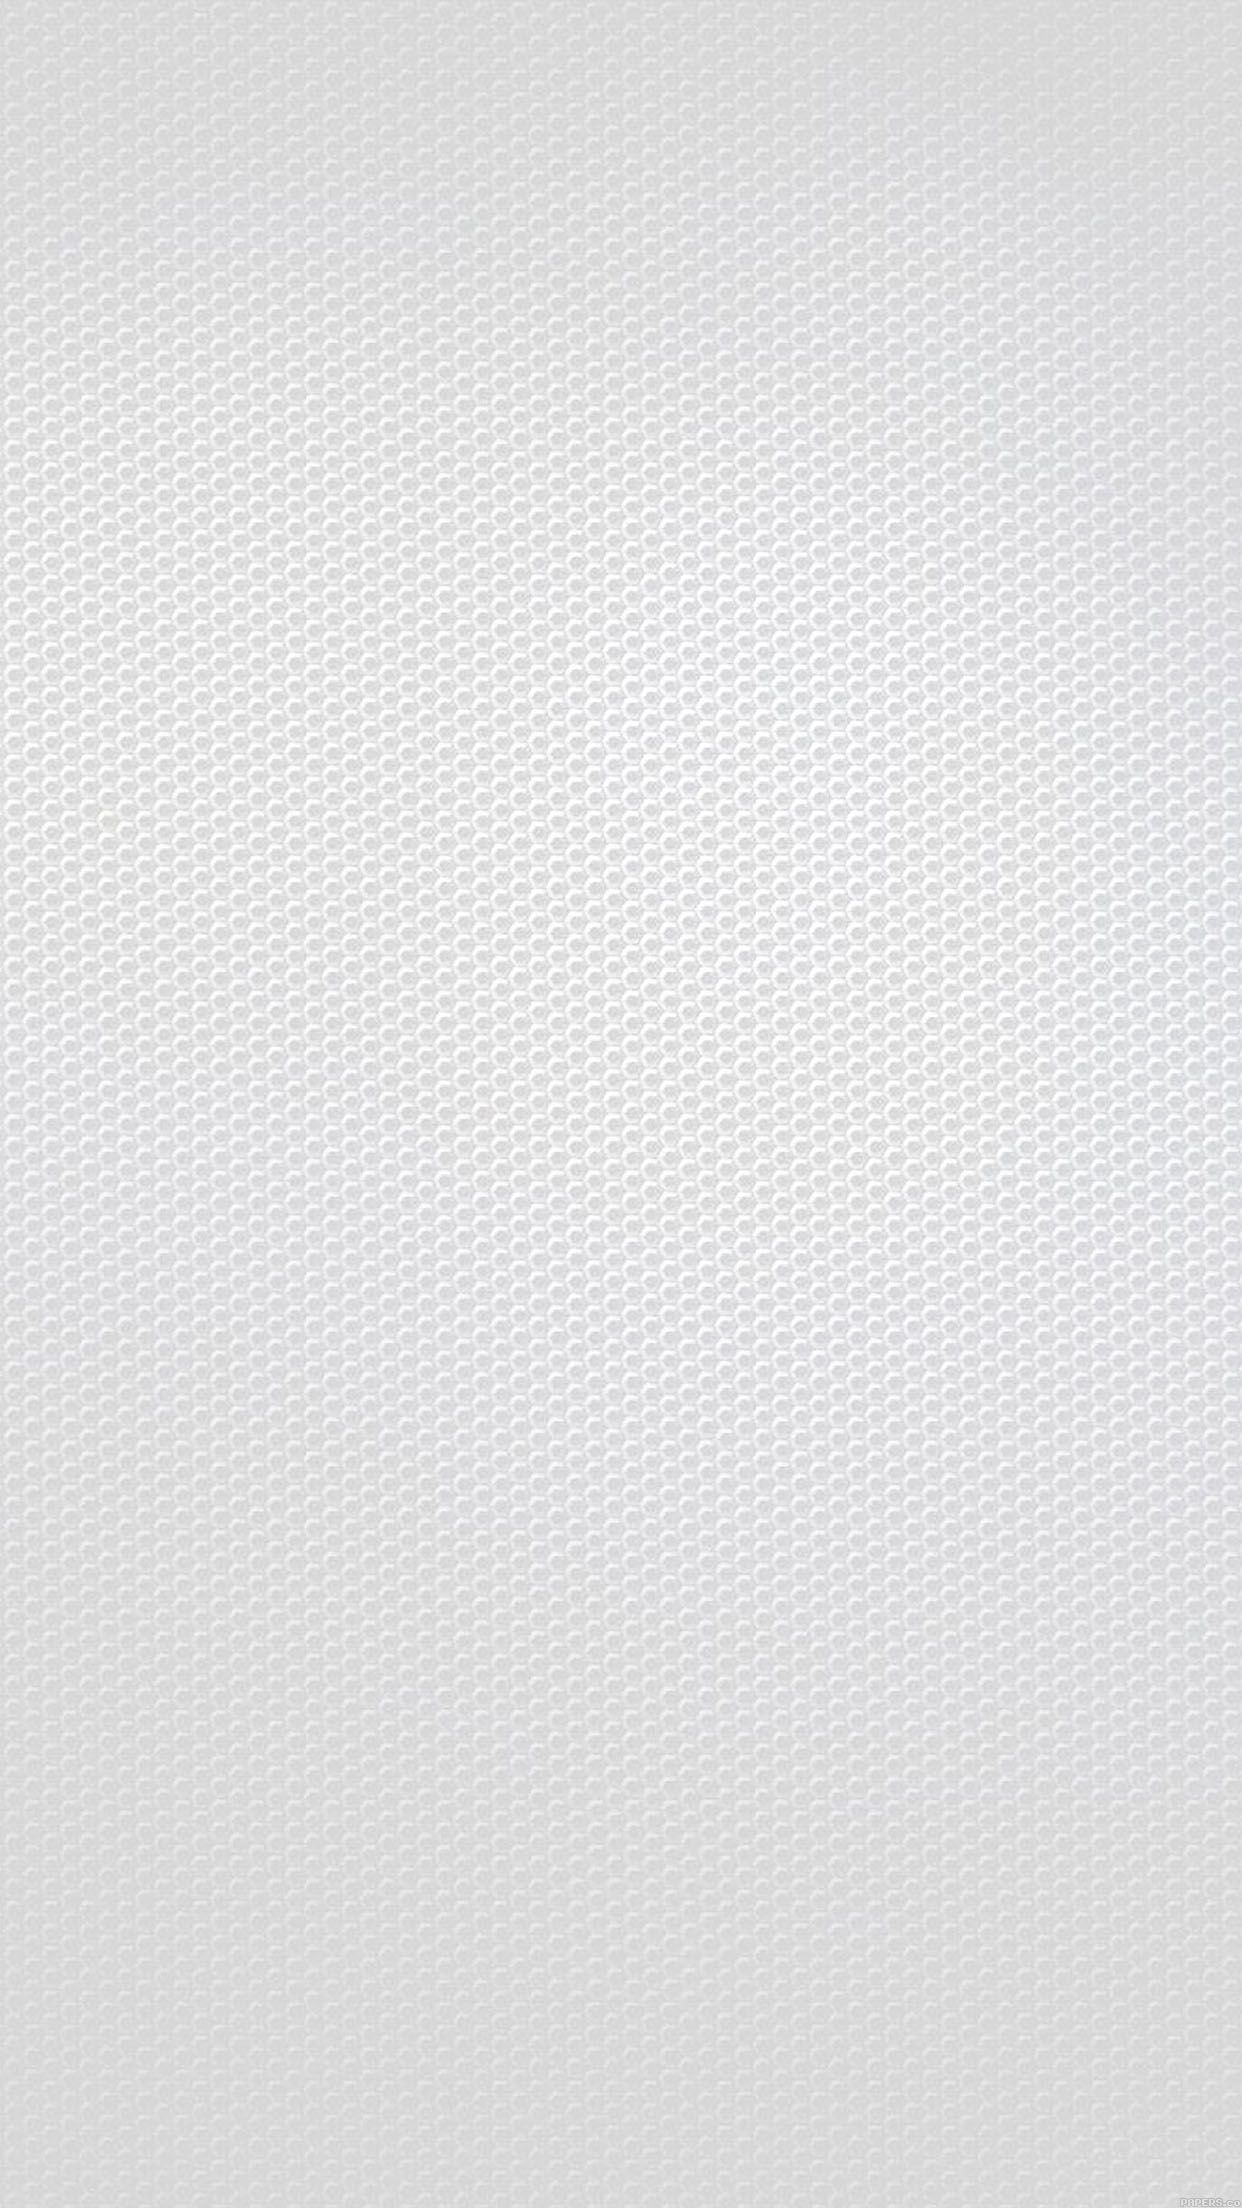 White Pattern Iphone Wallpapers Top Free White Pattern Iphone Backgrounds Wallpaperaccess